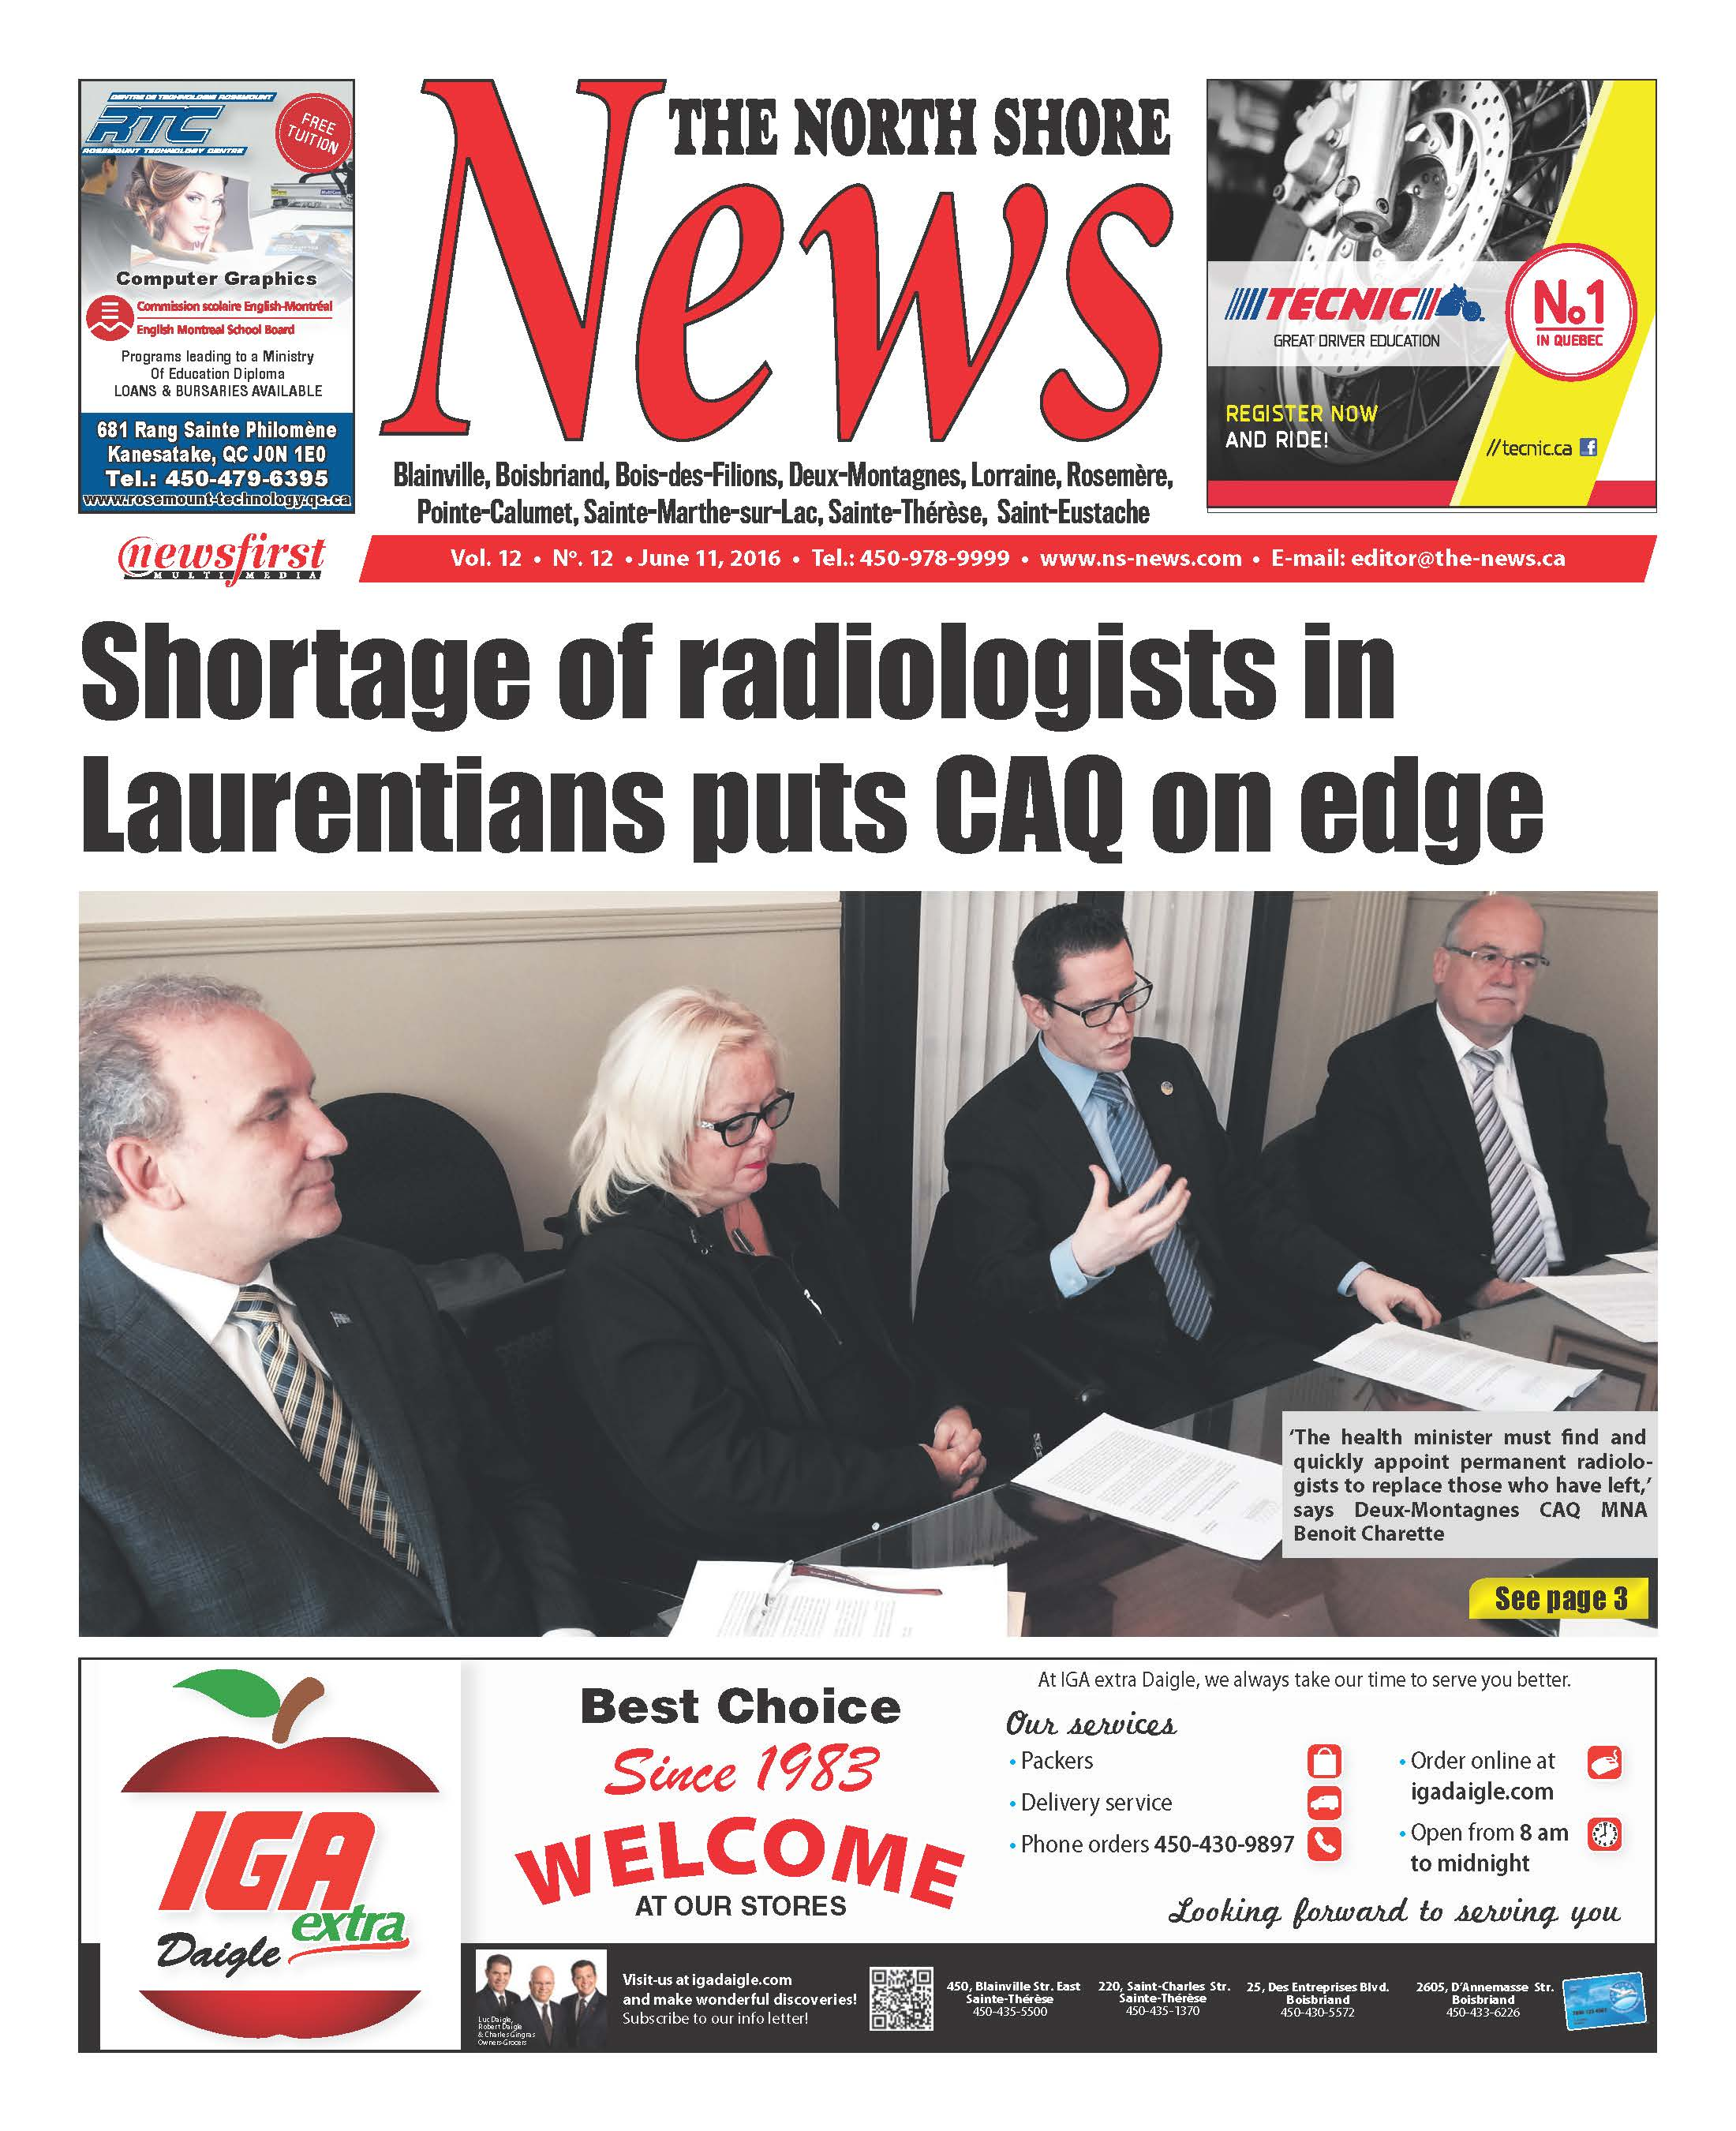 Front page image of the North Shore News Volume 12-12